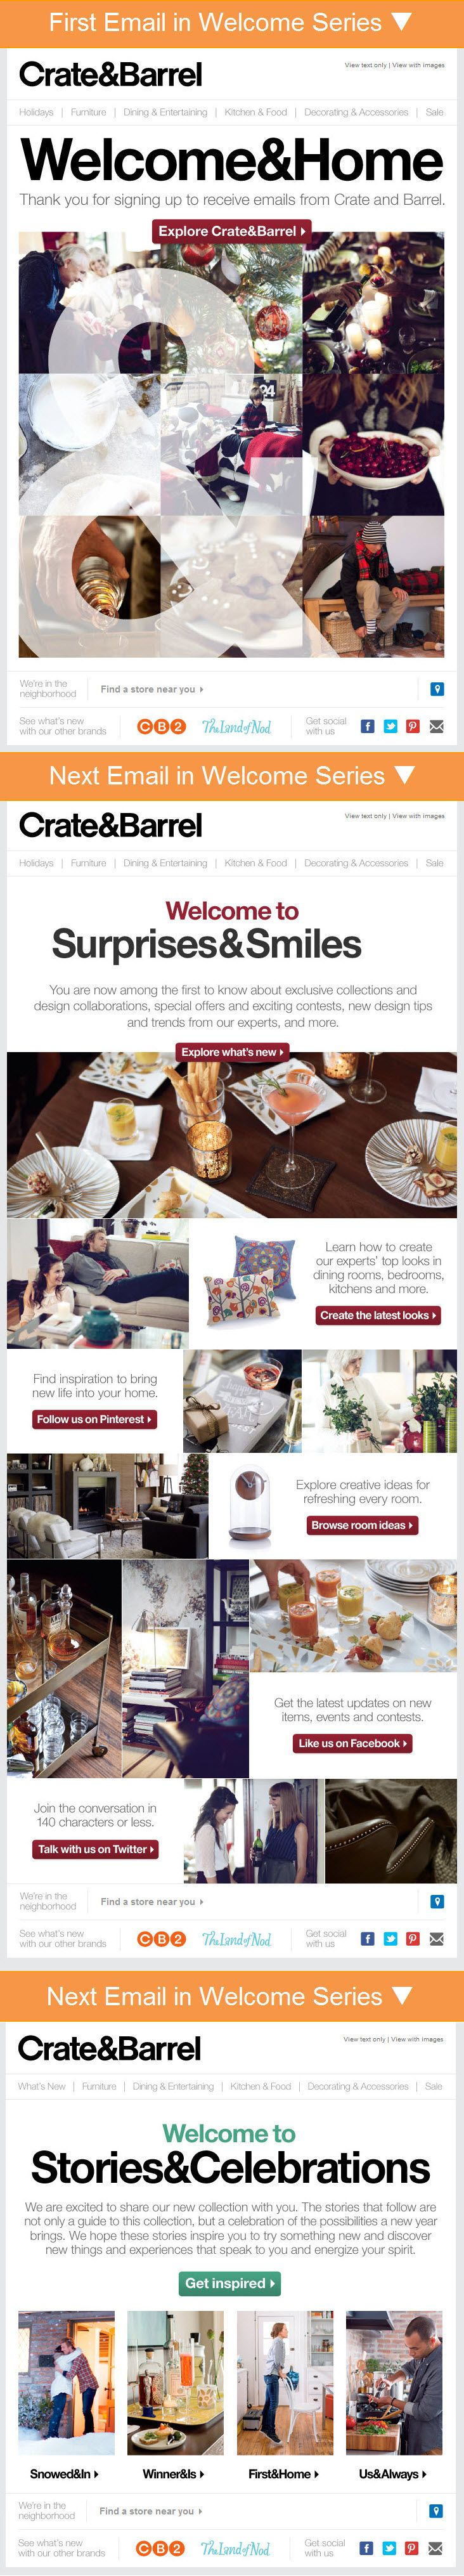 Crate & Barrel >> sent Q1 2013 >> Welcome & Home // Sneaks & Peeks // Stories & Celebrations >> Crate & Barrel's 3-email welcome series is interesting because they are a cohesive string of emails, with subject lines and headlines that follow the same syntactical pattern. They are clearly a set.  –Chad White, Principal of Marketing Research